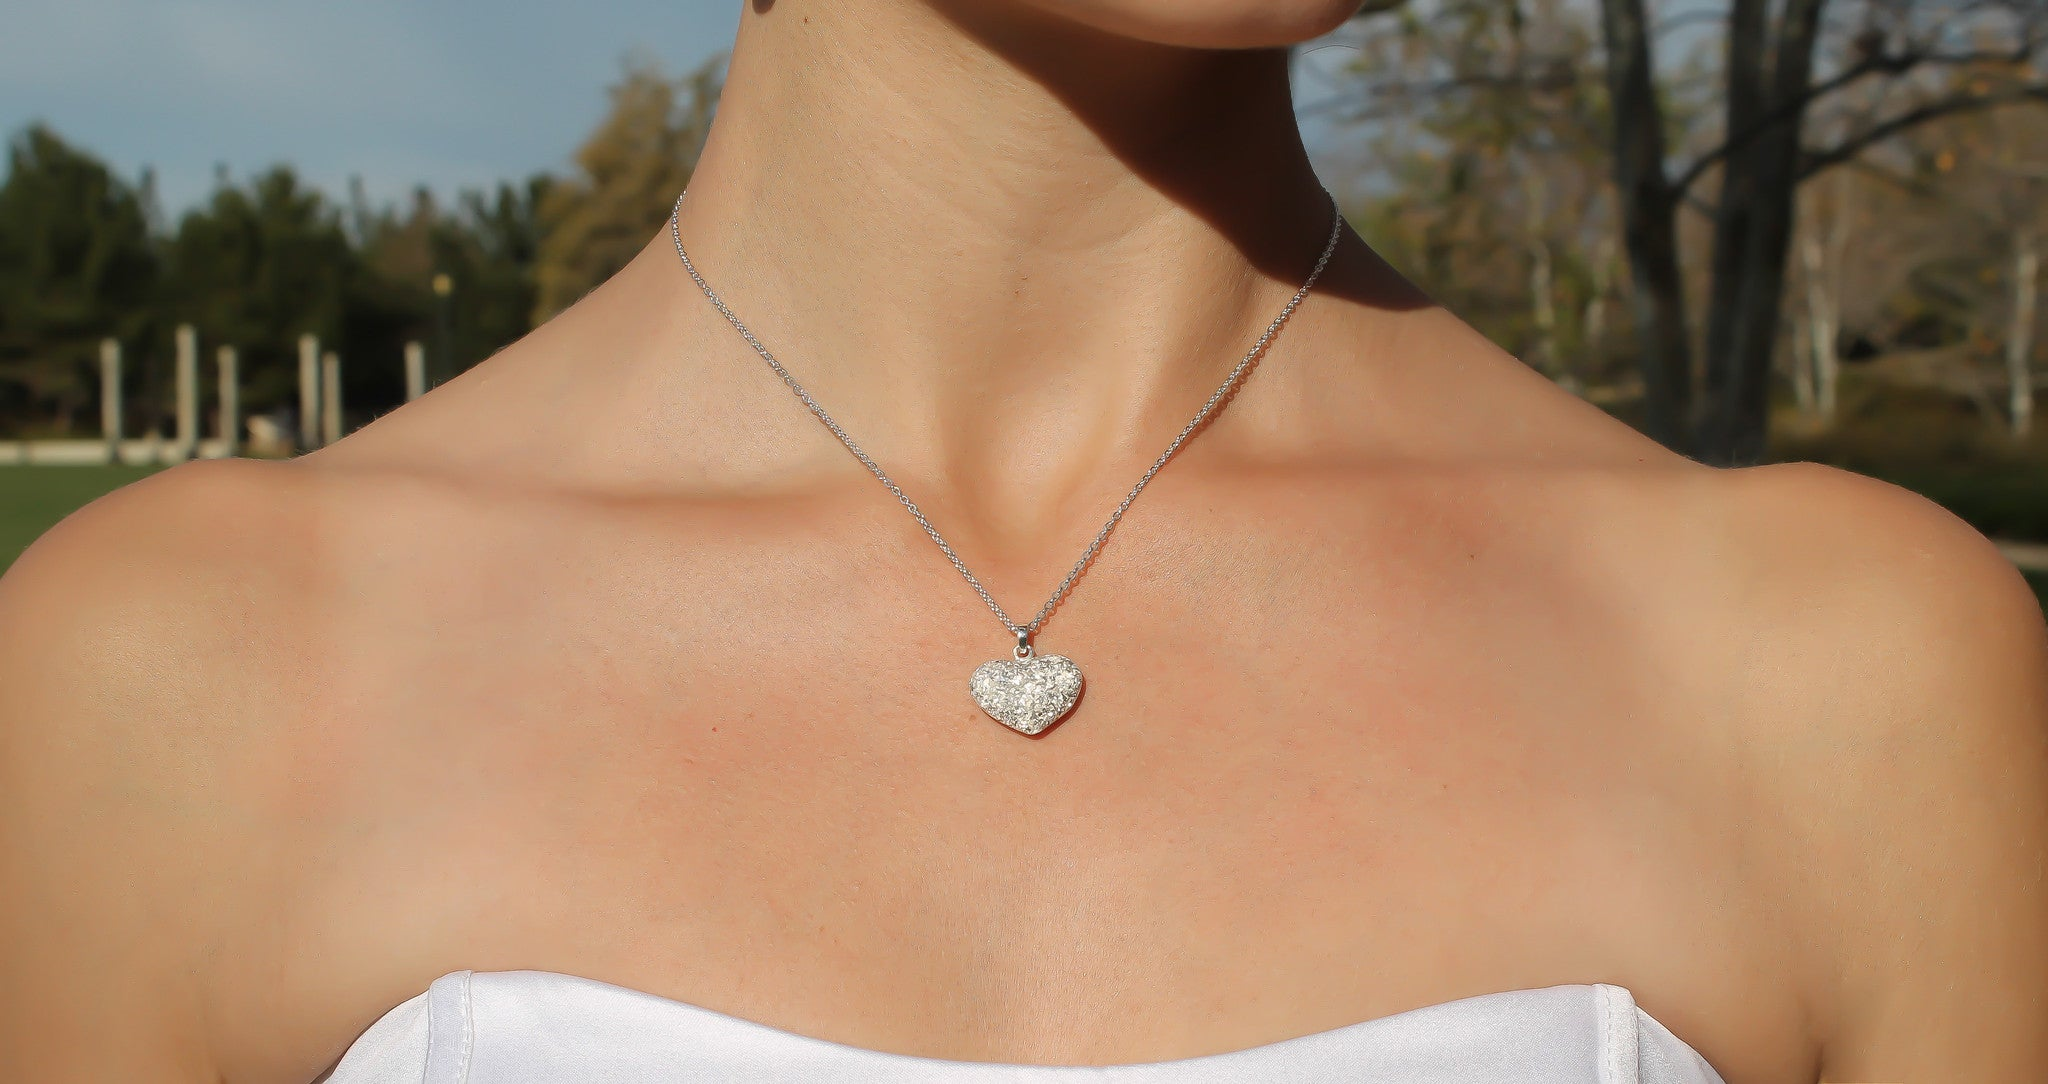 Wedding Necklaces Sparkling & Crystalline 925 Silver - Bride Glamor